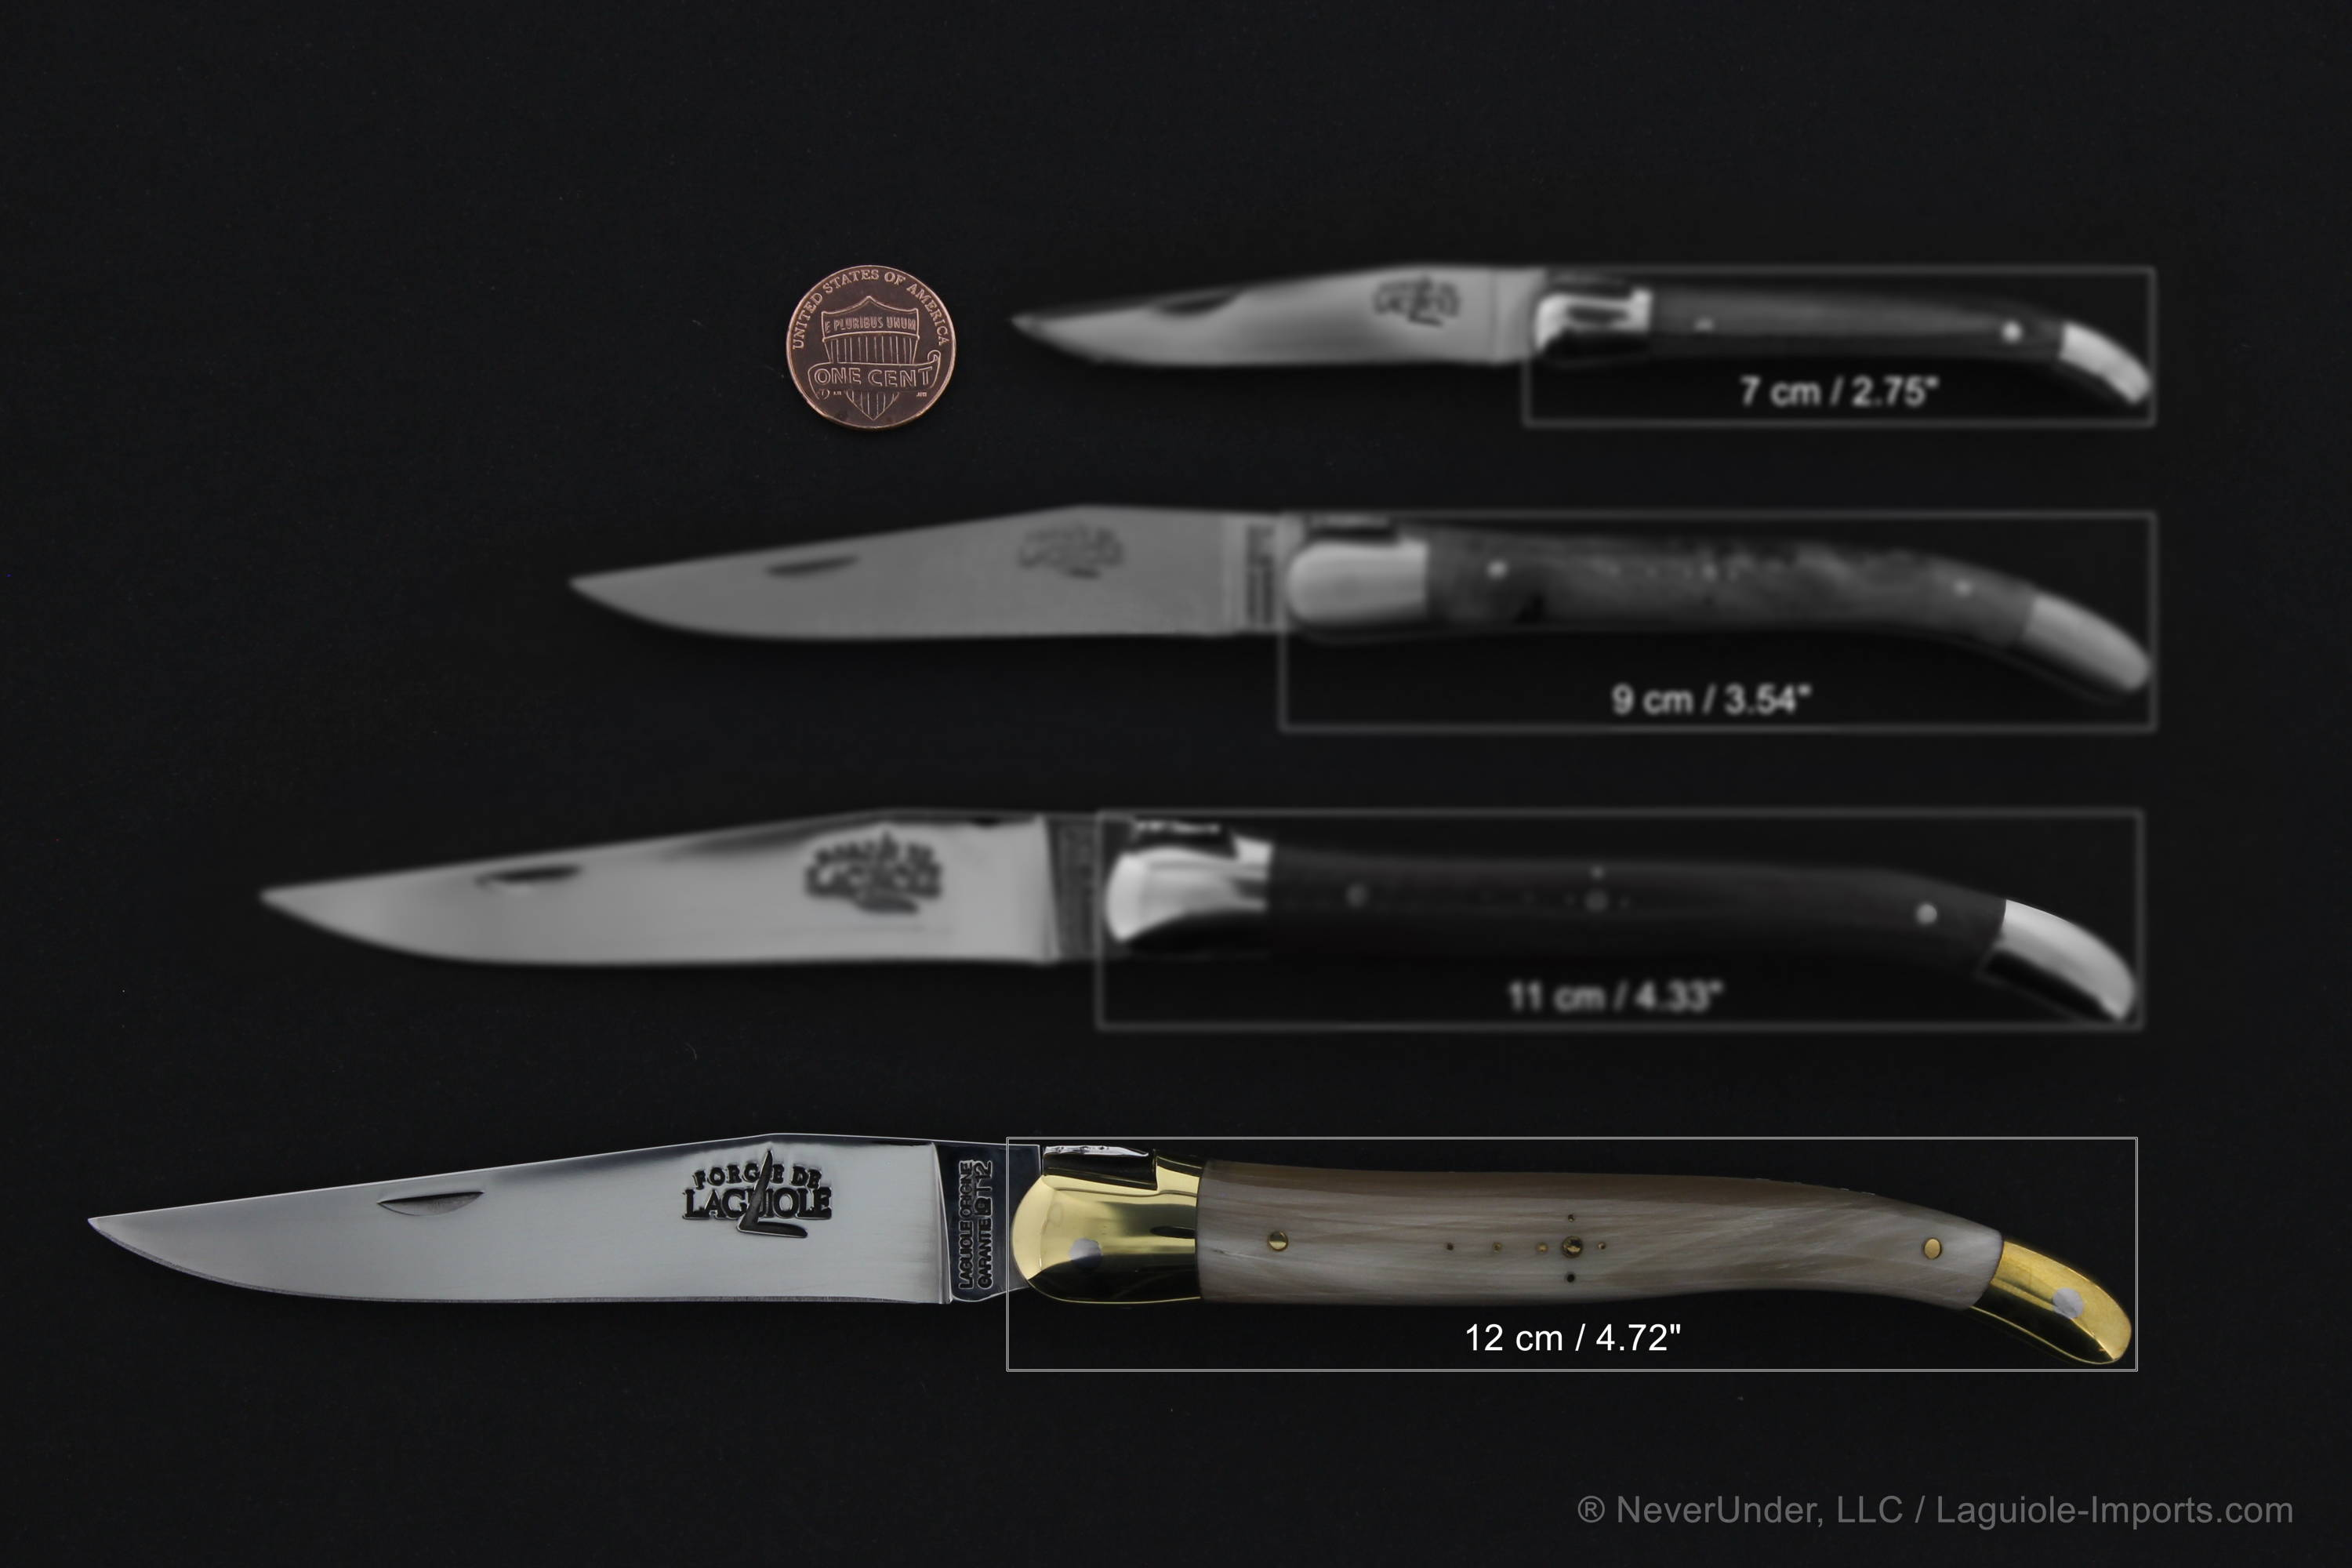 Laguiole 12 cm knife comparison